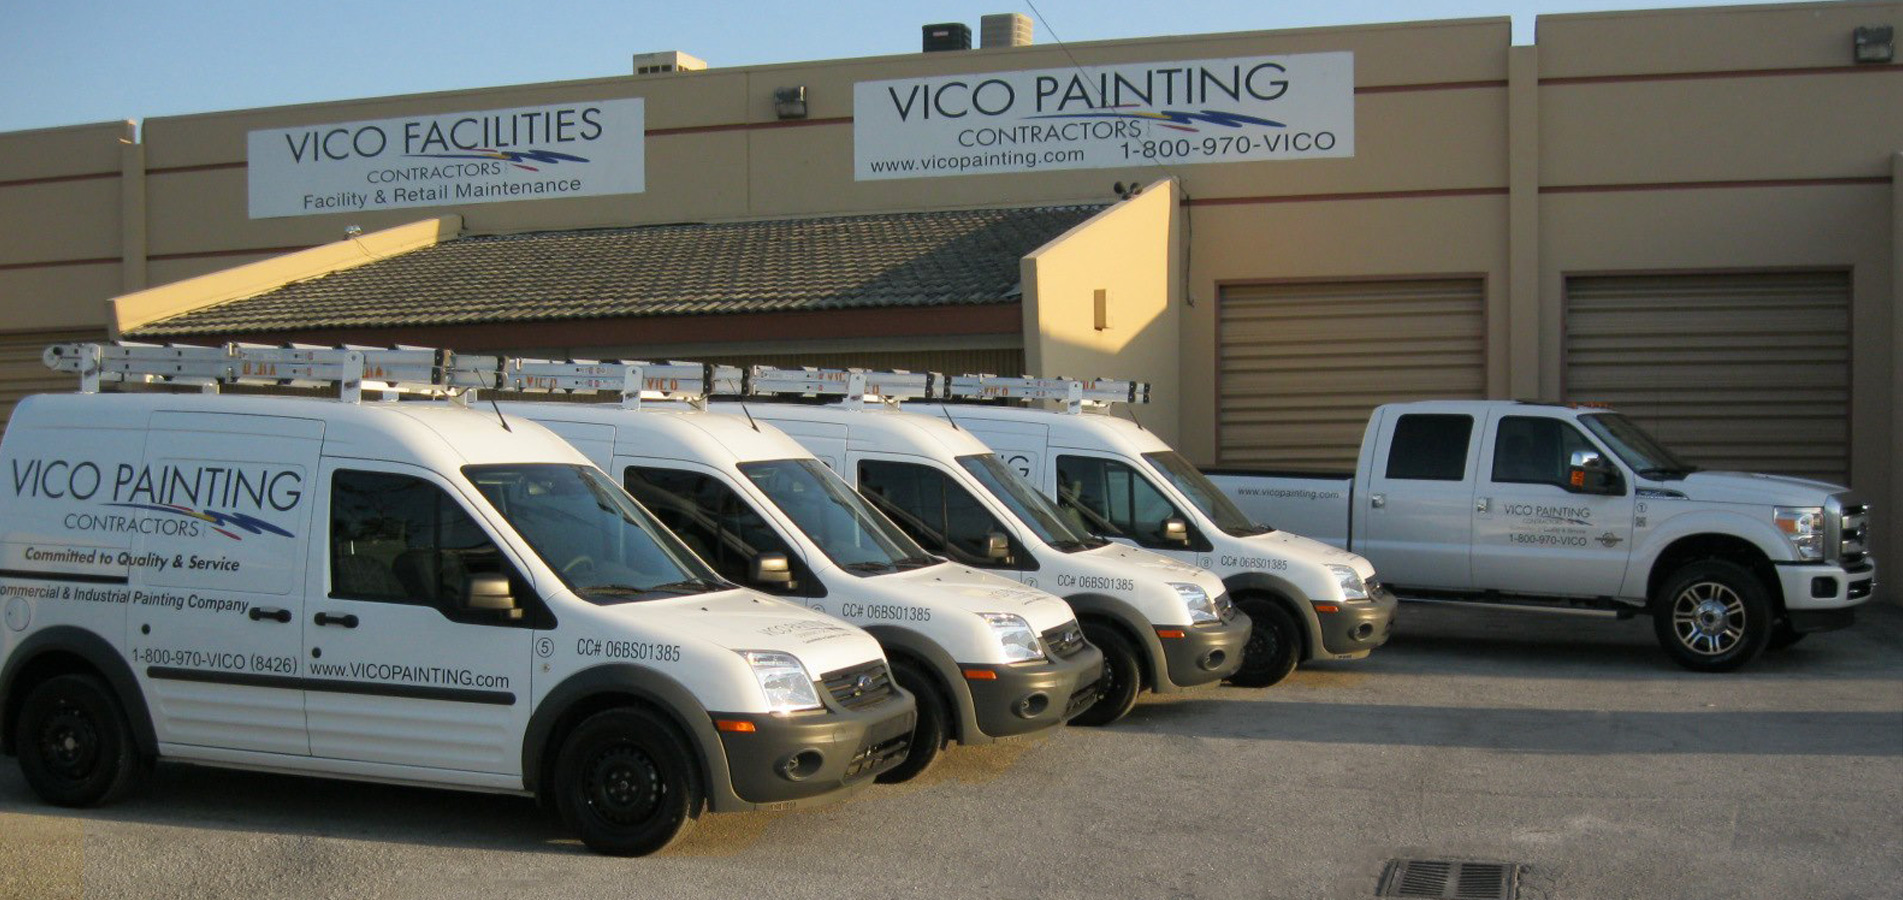 In House OSHA 10hr Training, Vico Painting Contractors, Miami, Fl